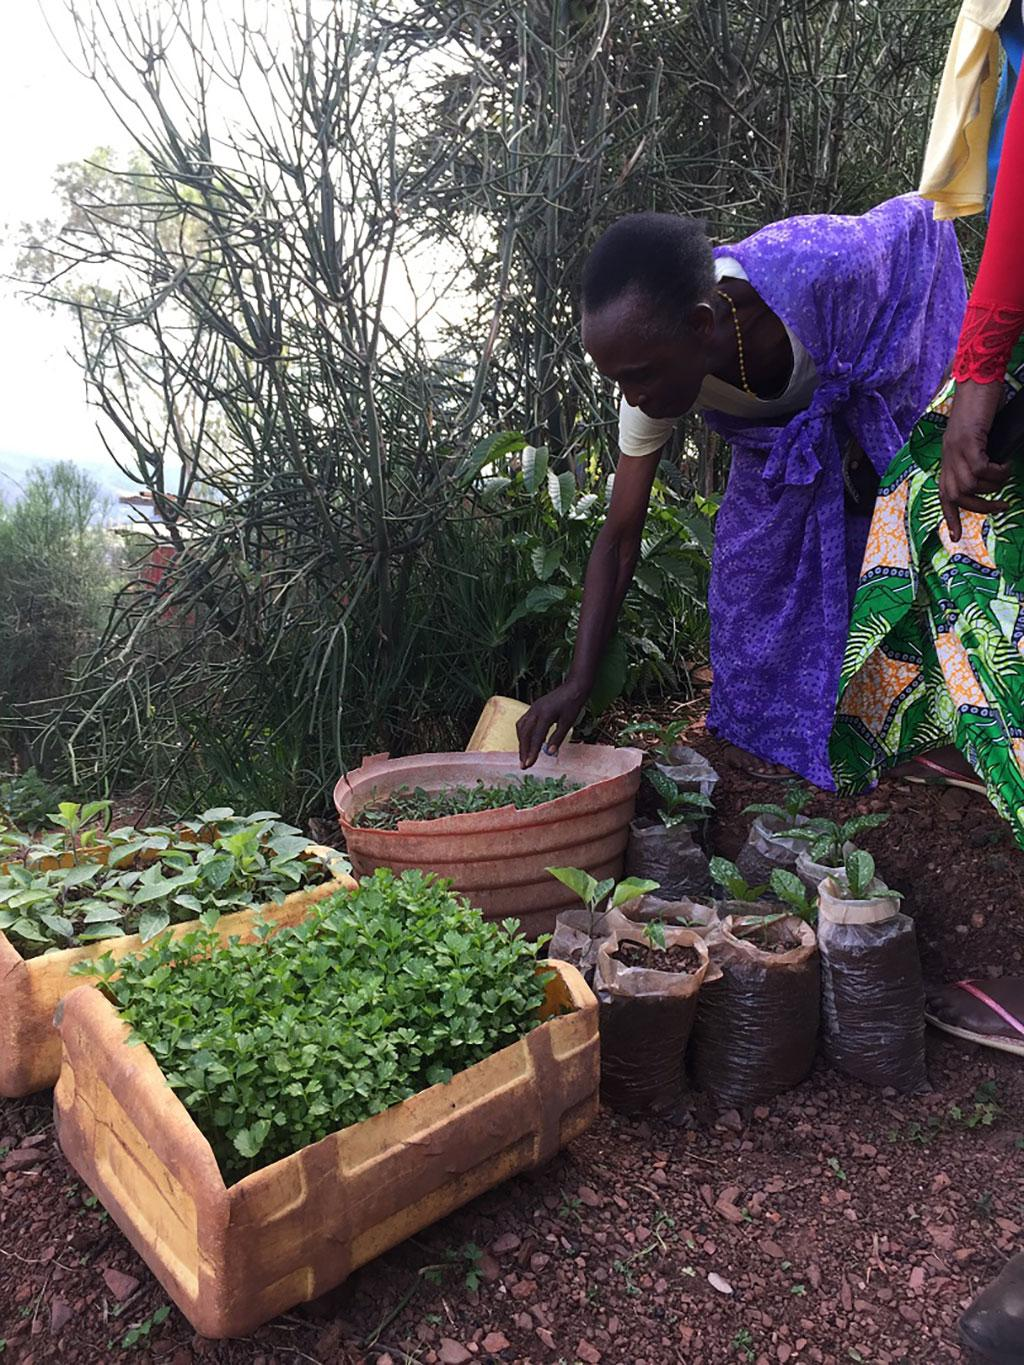 The responsibility of the kitchen garden is with the women who are assisted by the Farmer Field School.